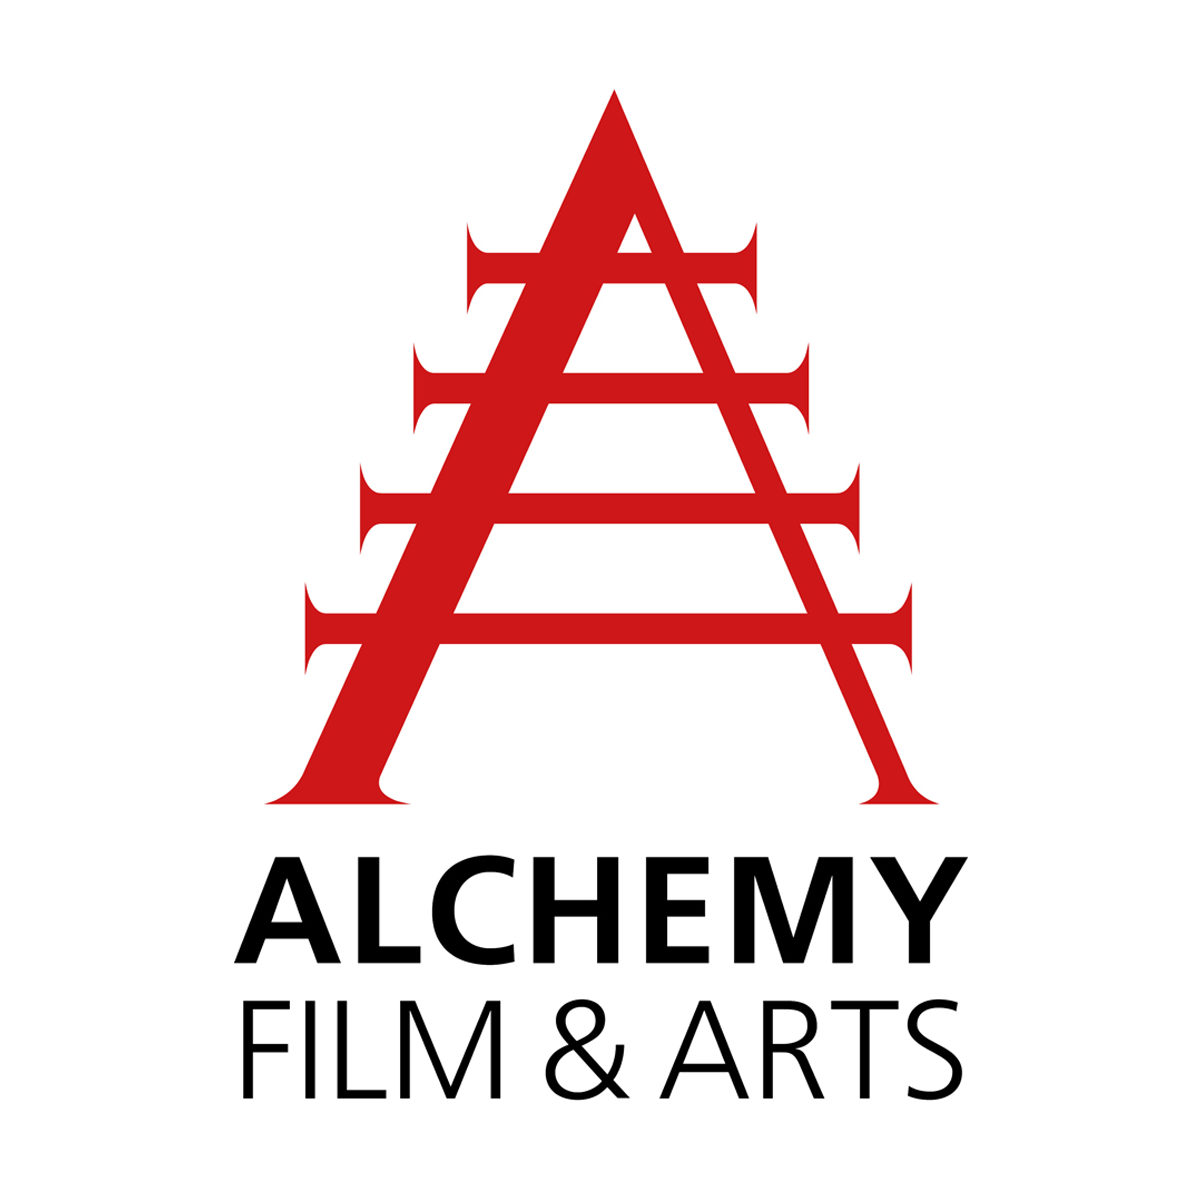 Alchemy Film